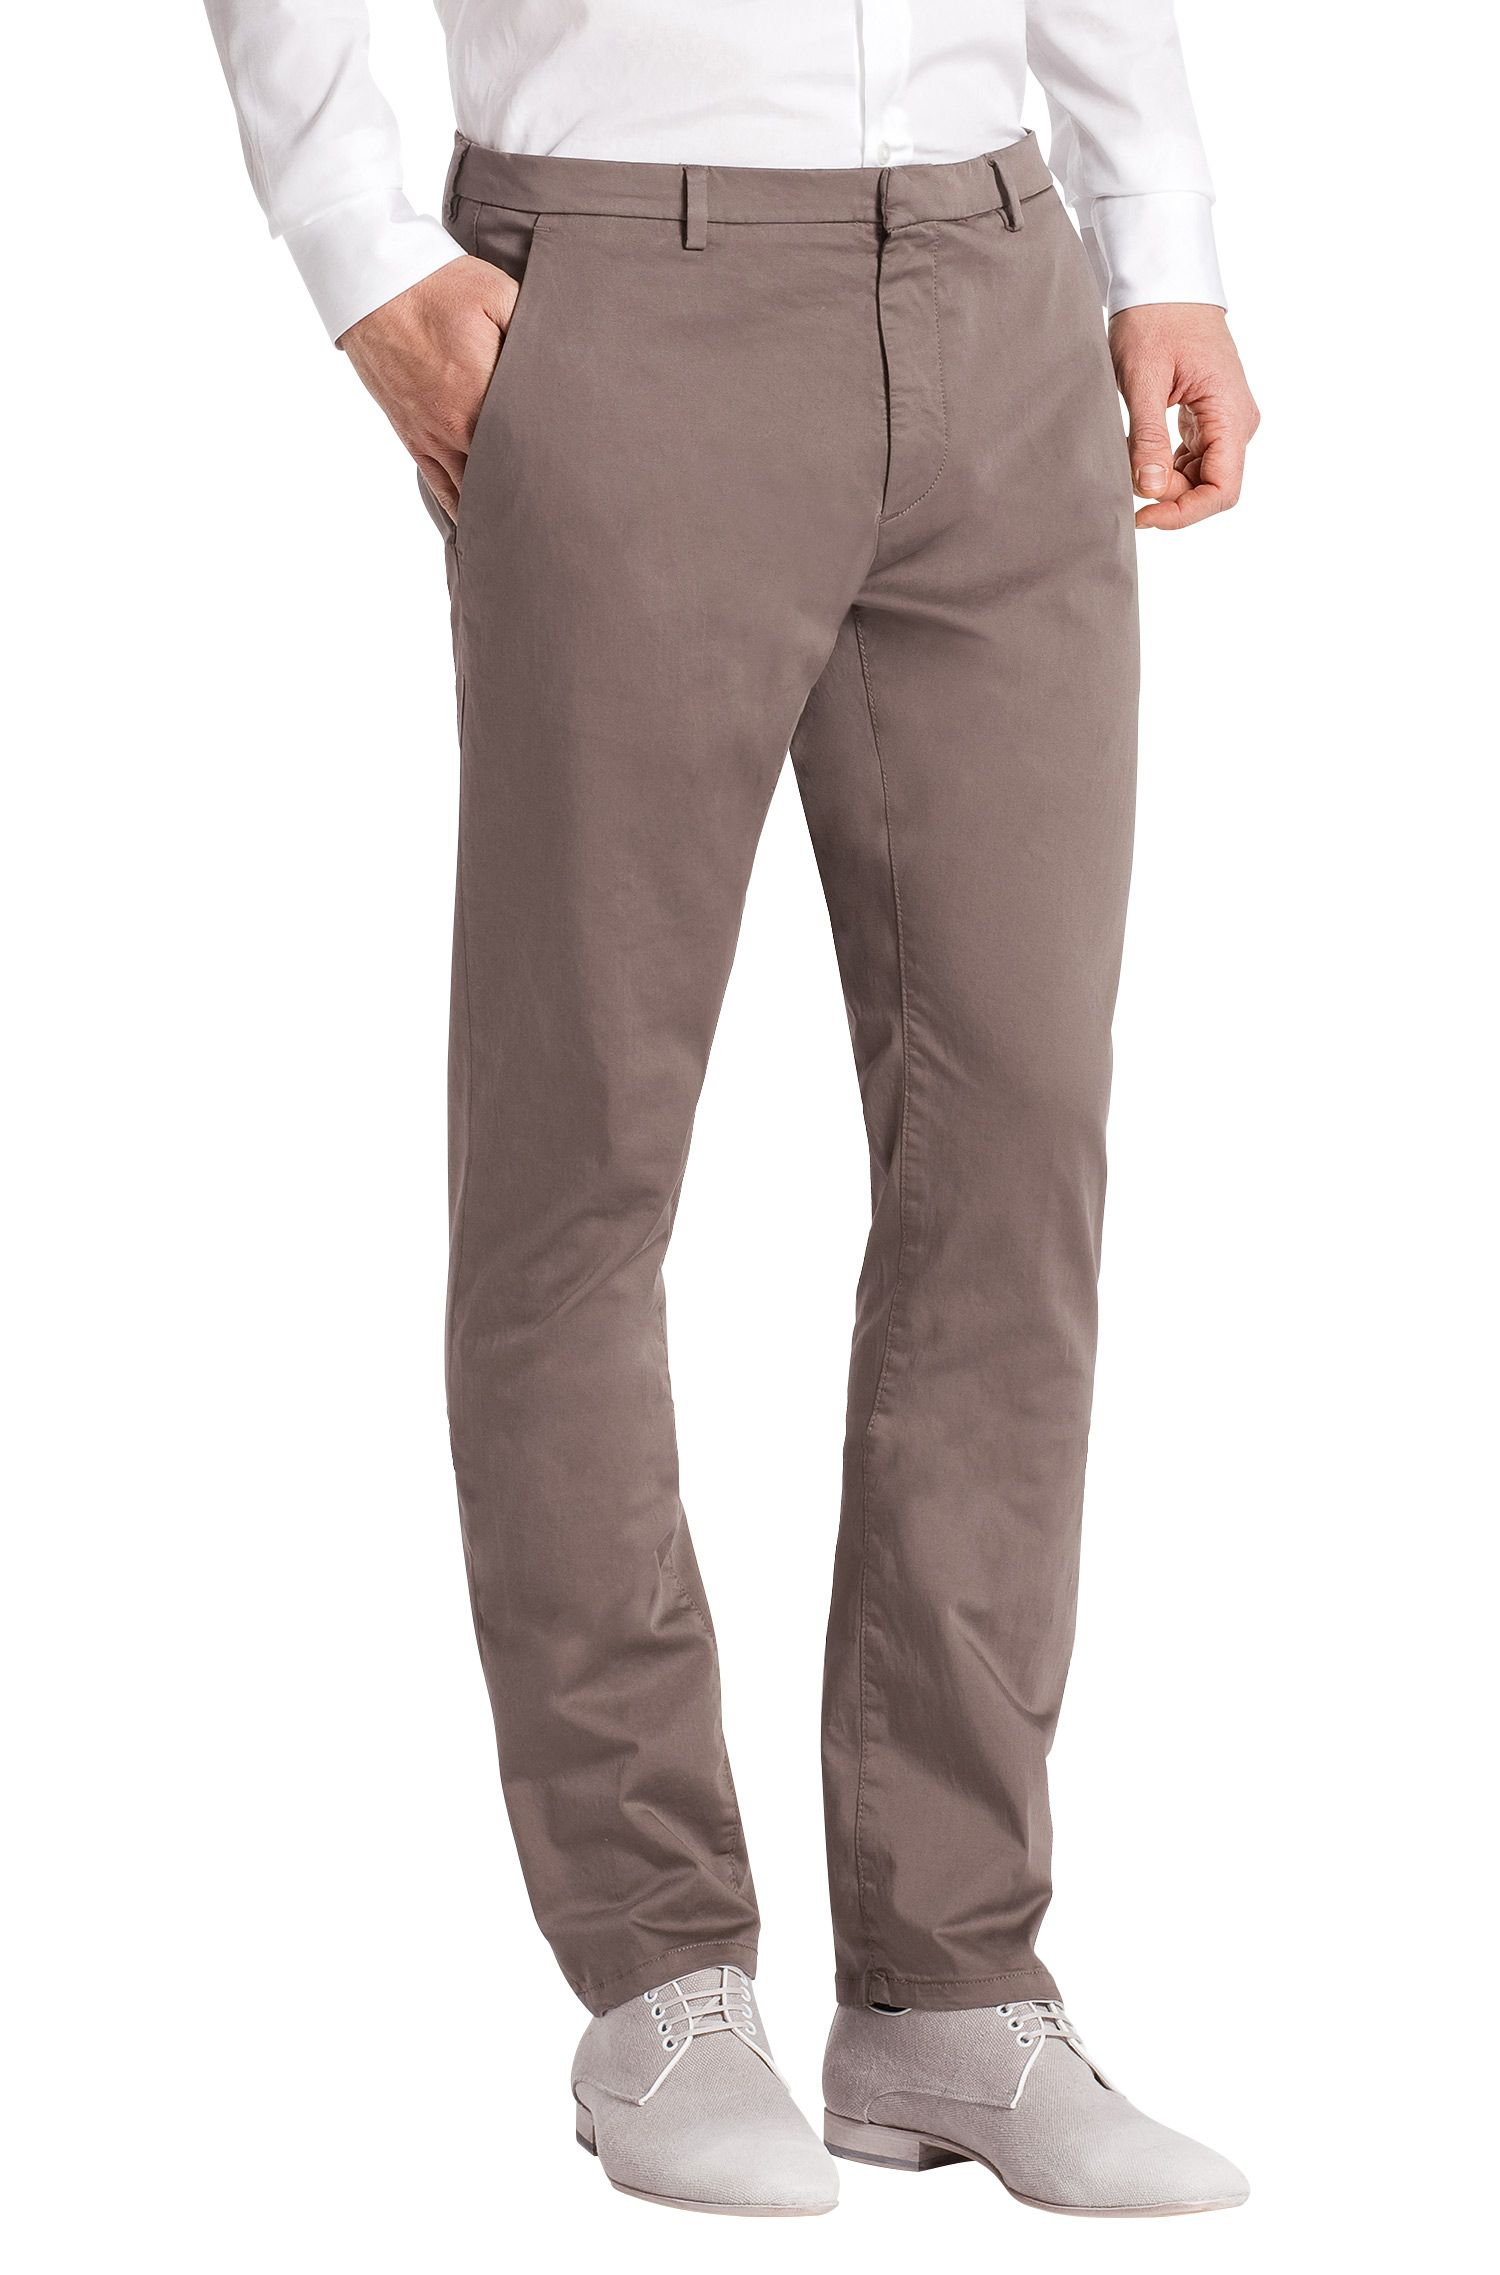 New chino fit broek ´Helgo-D`